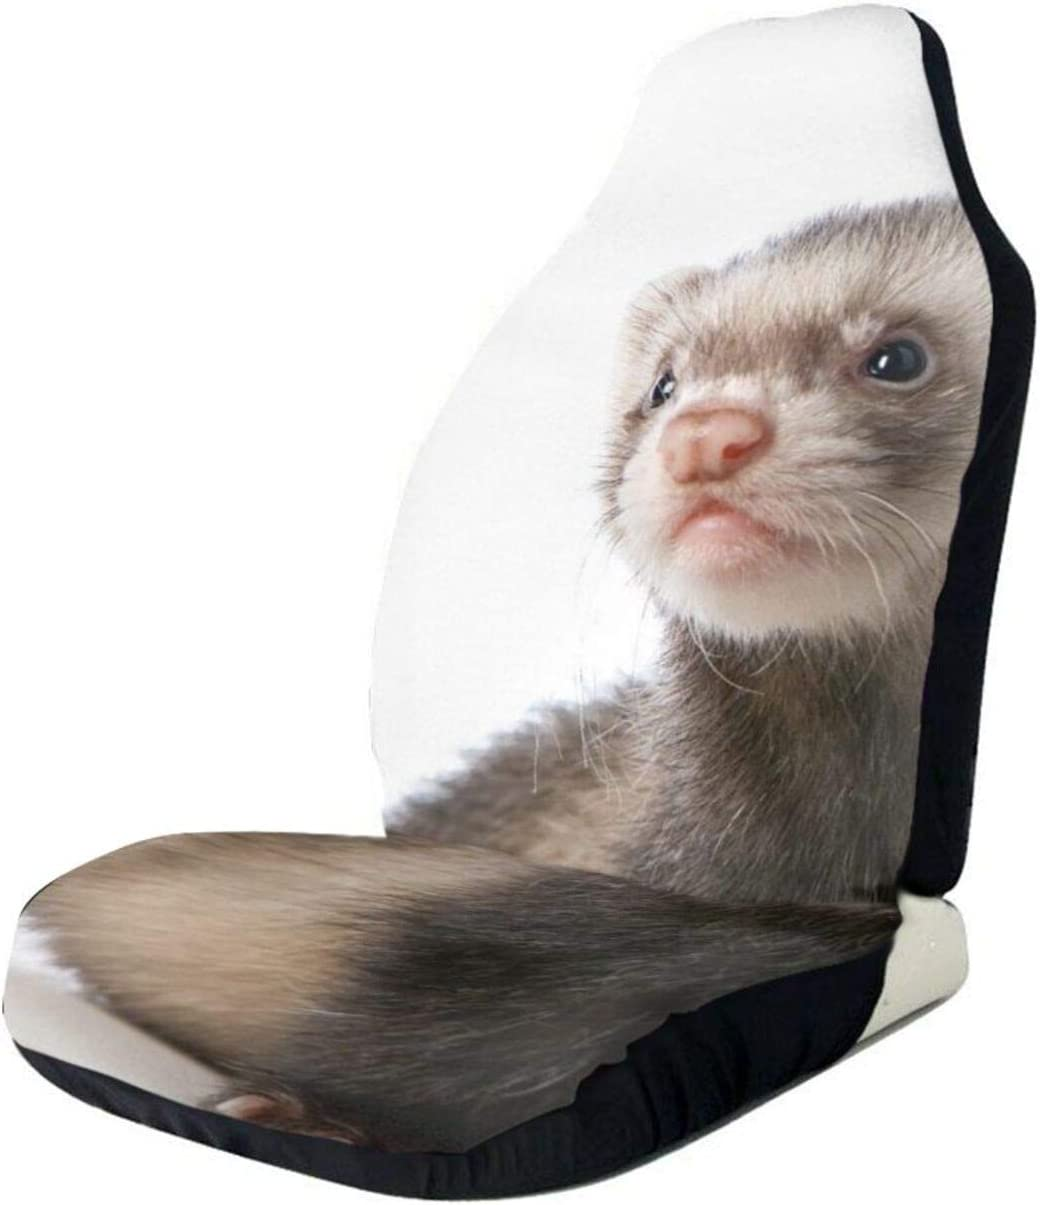 Cute OFFicial site Ferret Front Car Seat Full Protector Covers Vehicle Ca Challenge the lowest price of Japan